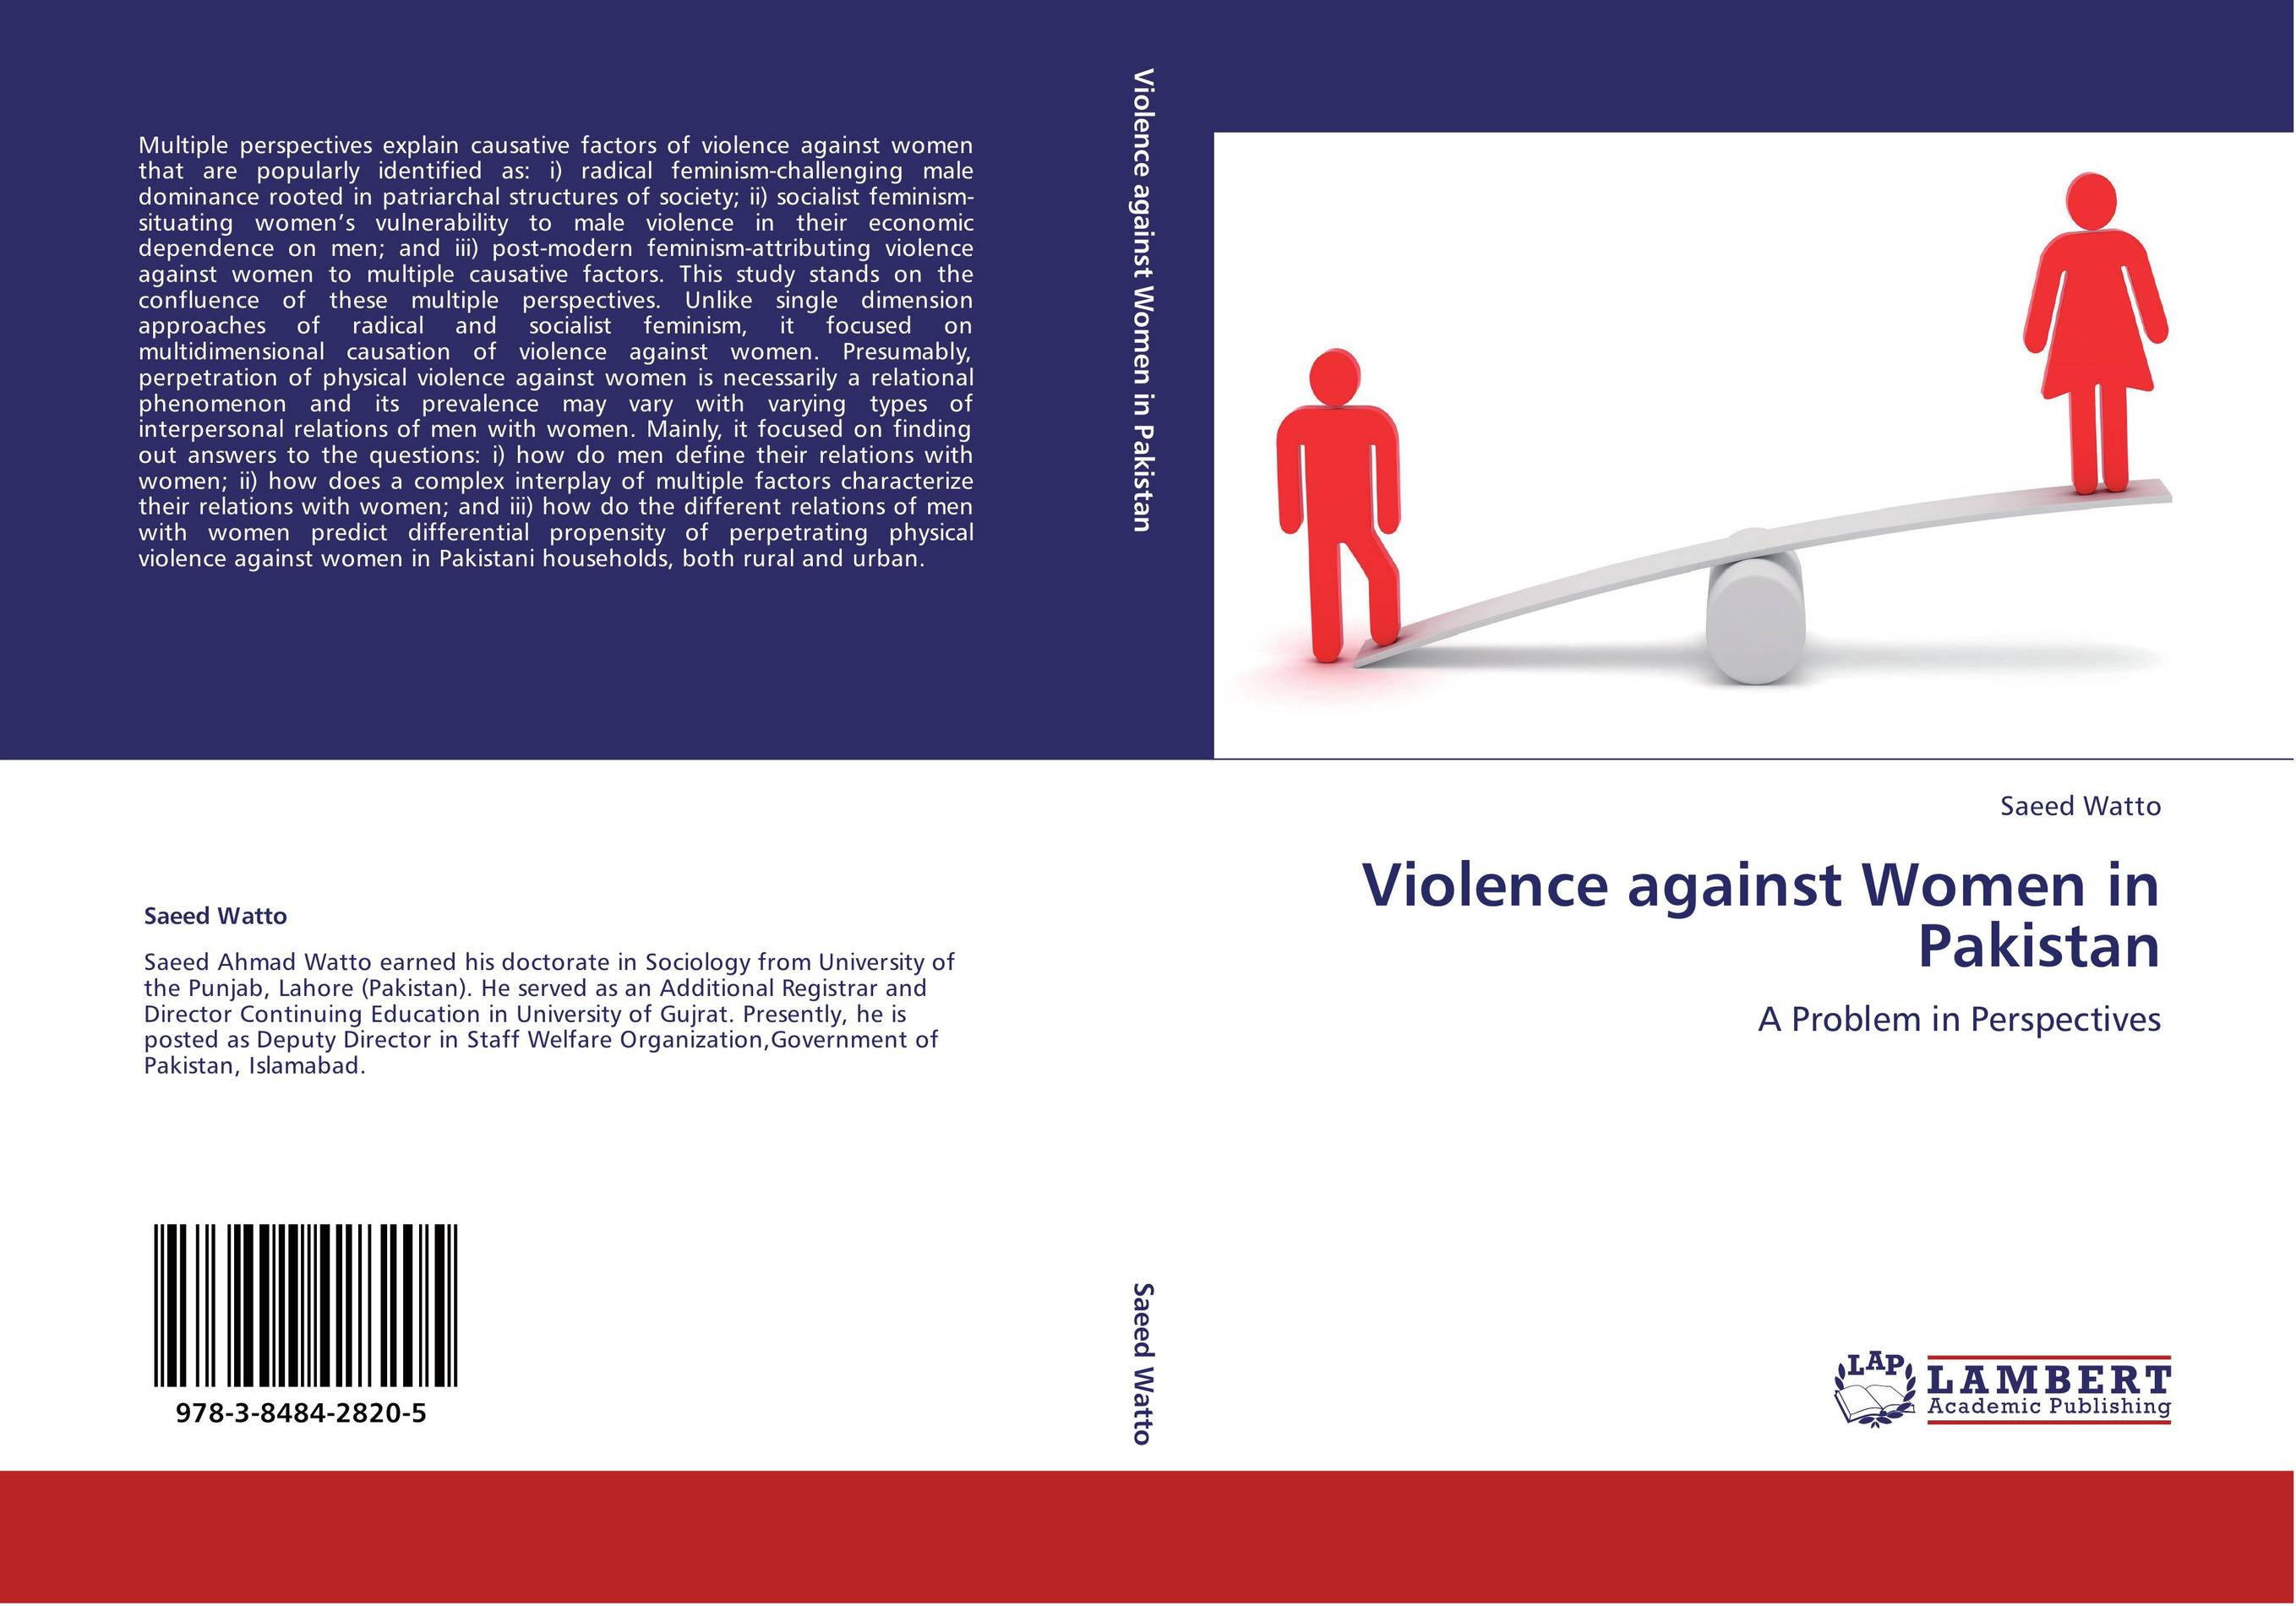 an analysis of the increase in society taking stance against violence by many people The overall risk increase for violence was similar in bipolar disorder, where a recent meta-analysis synthesized nine studies and reported increased odd of violent outcomes in bipolar patients in the range of 3:1 to 6:1 compared with the general population.